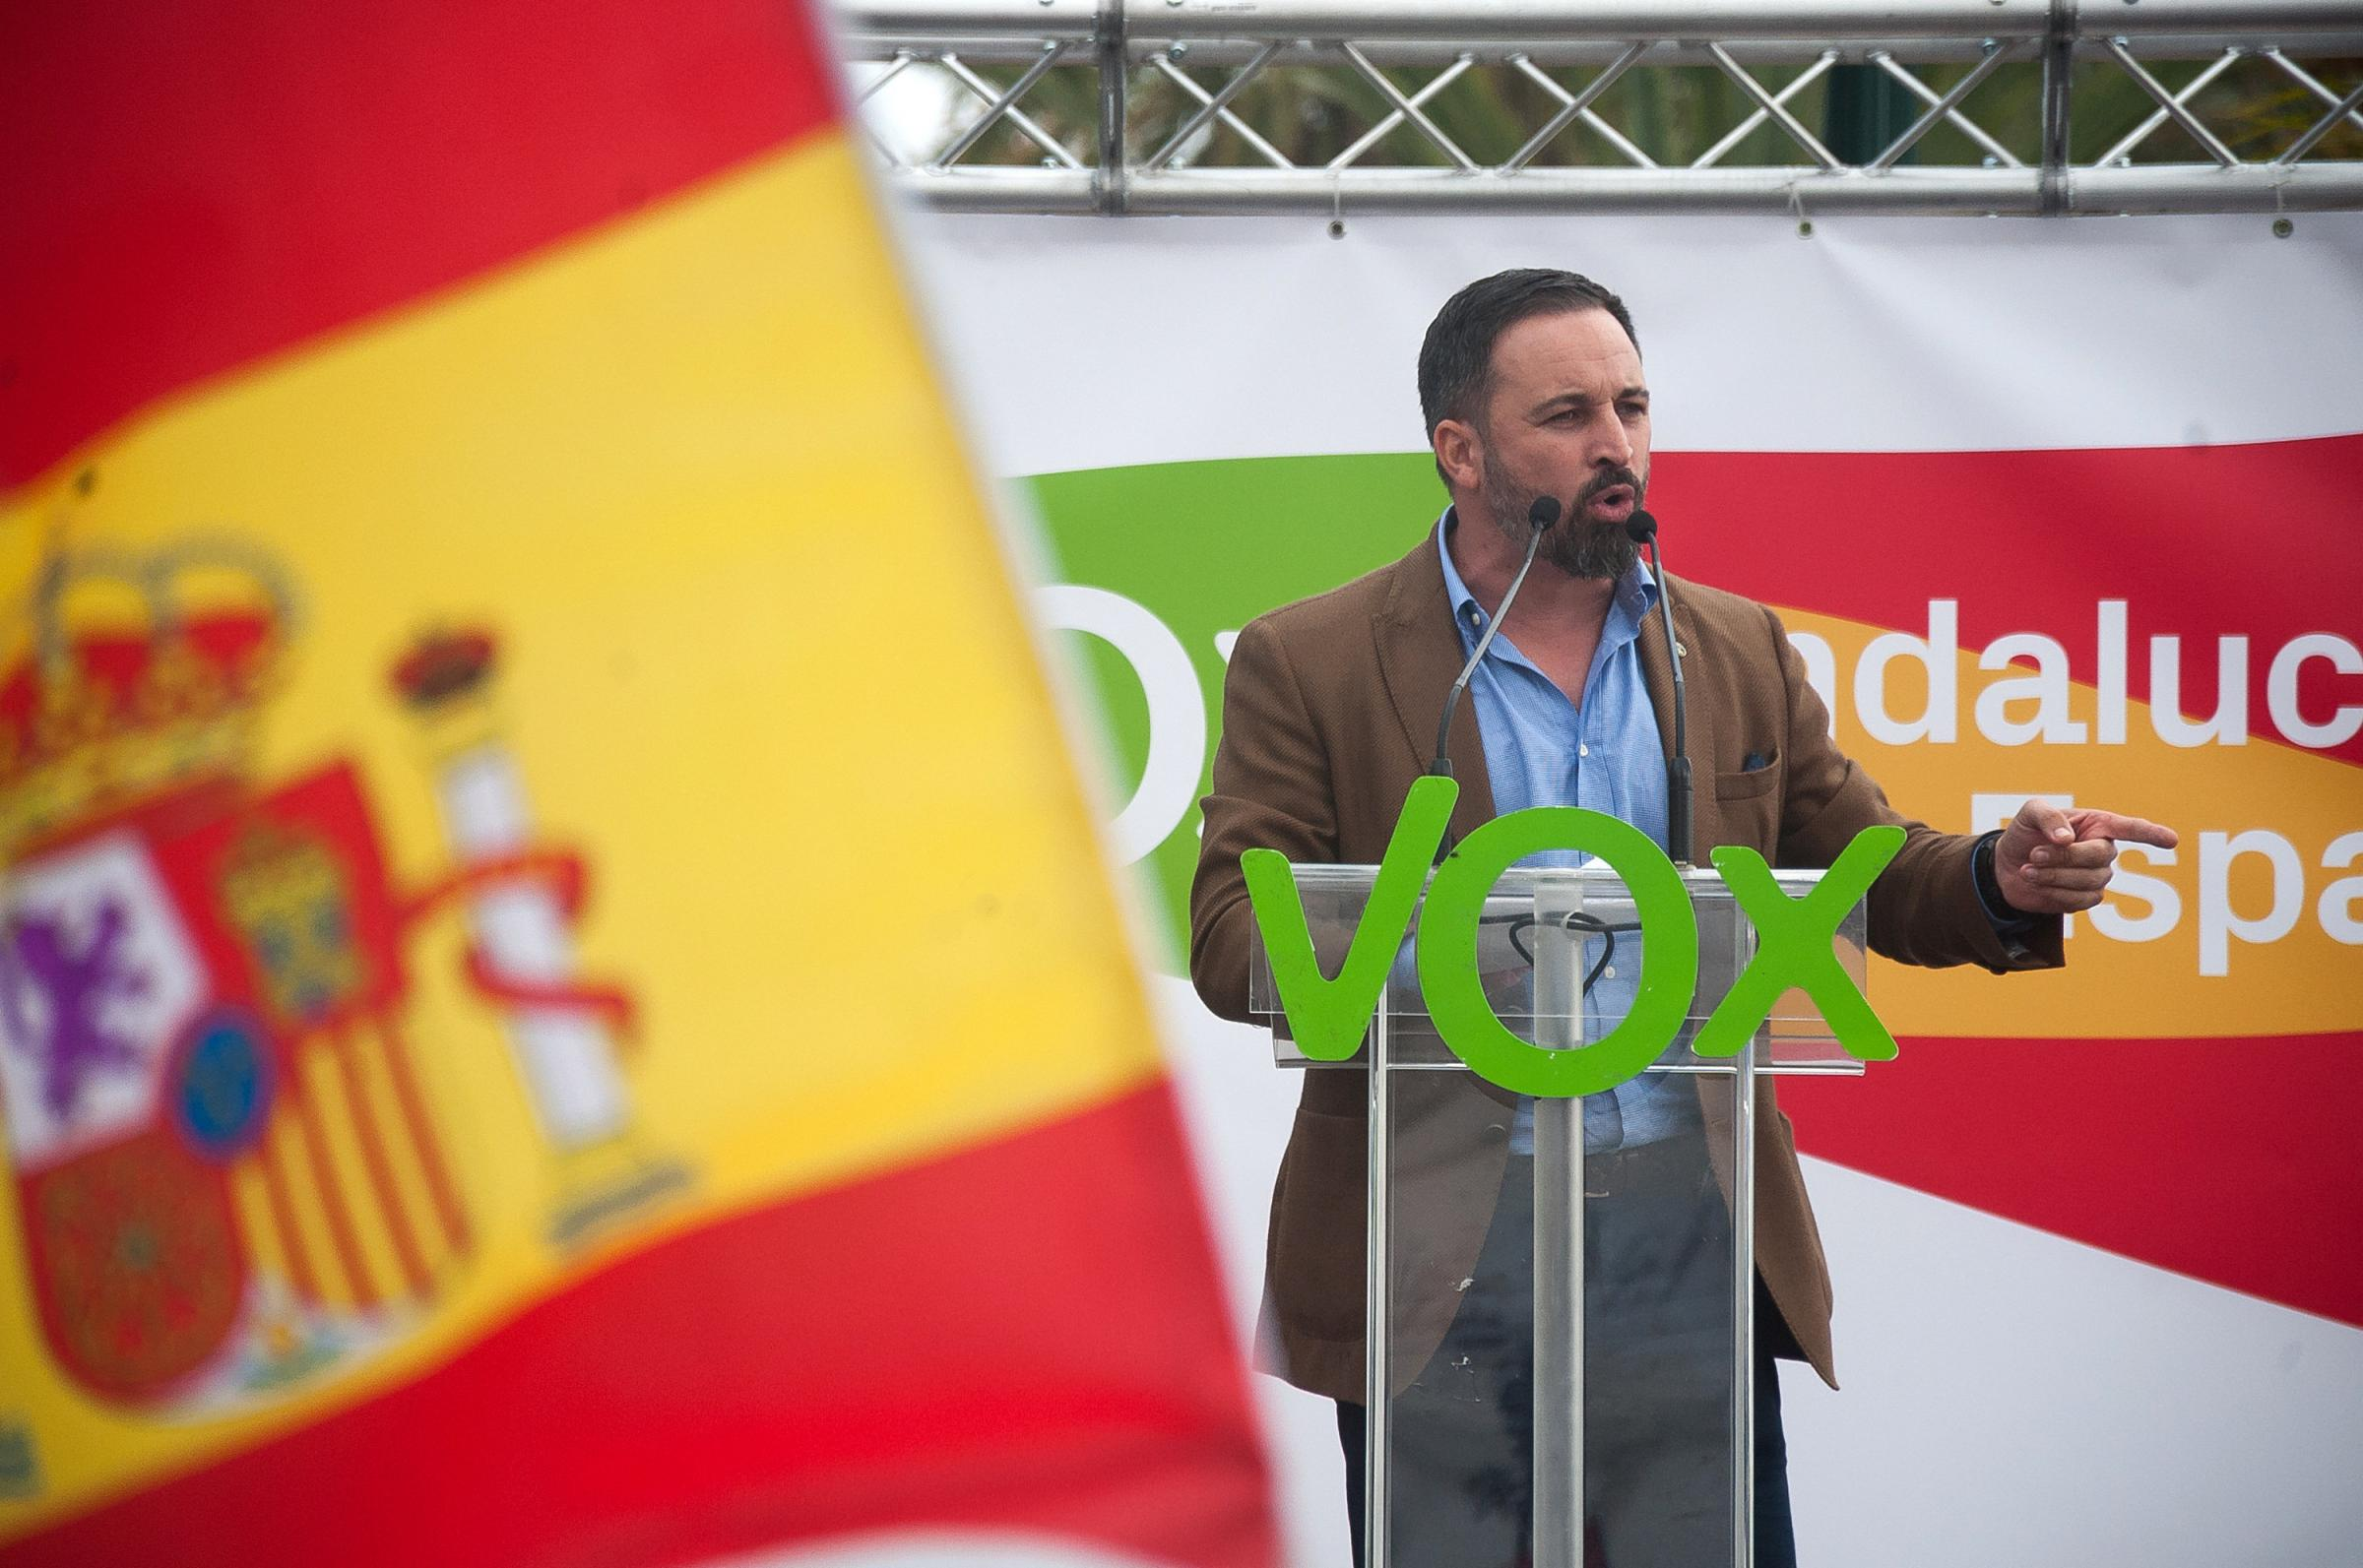 Spanish far-right Vox Party leader Santiago Abascal during the campaign of the regional elections